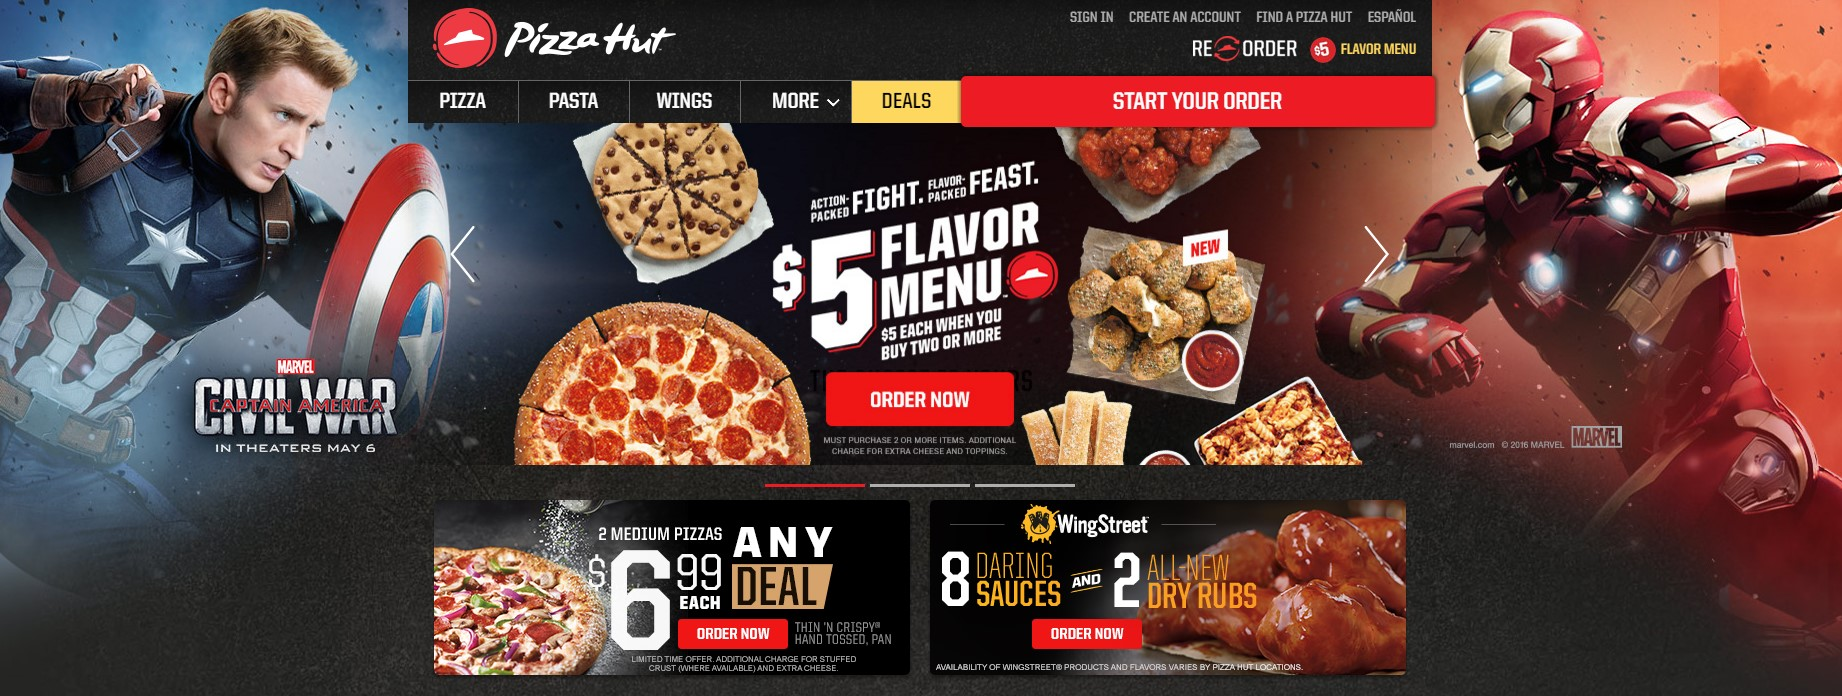 captain-america-3-pizza-hut.jpg